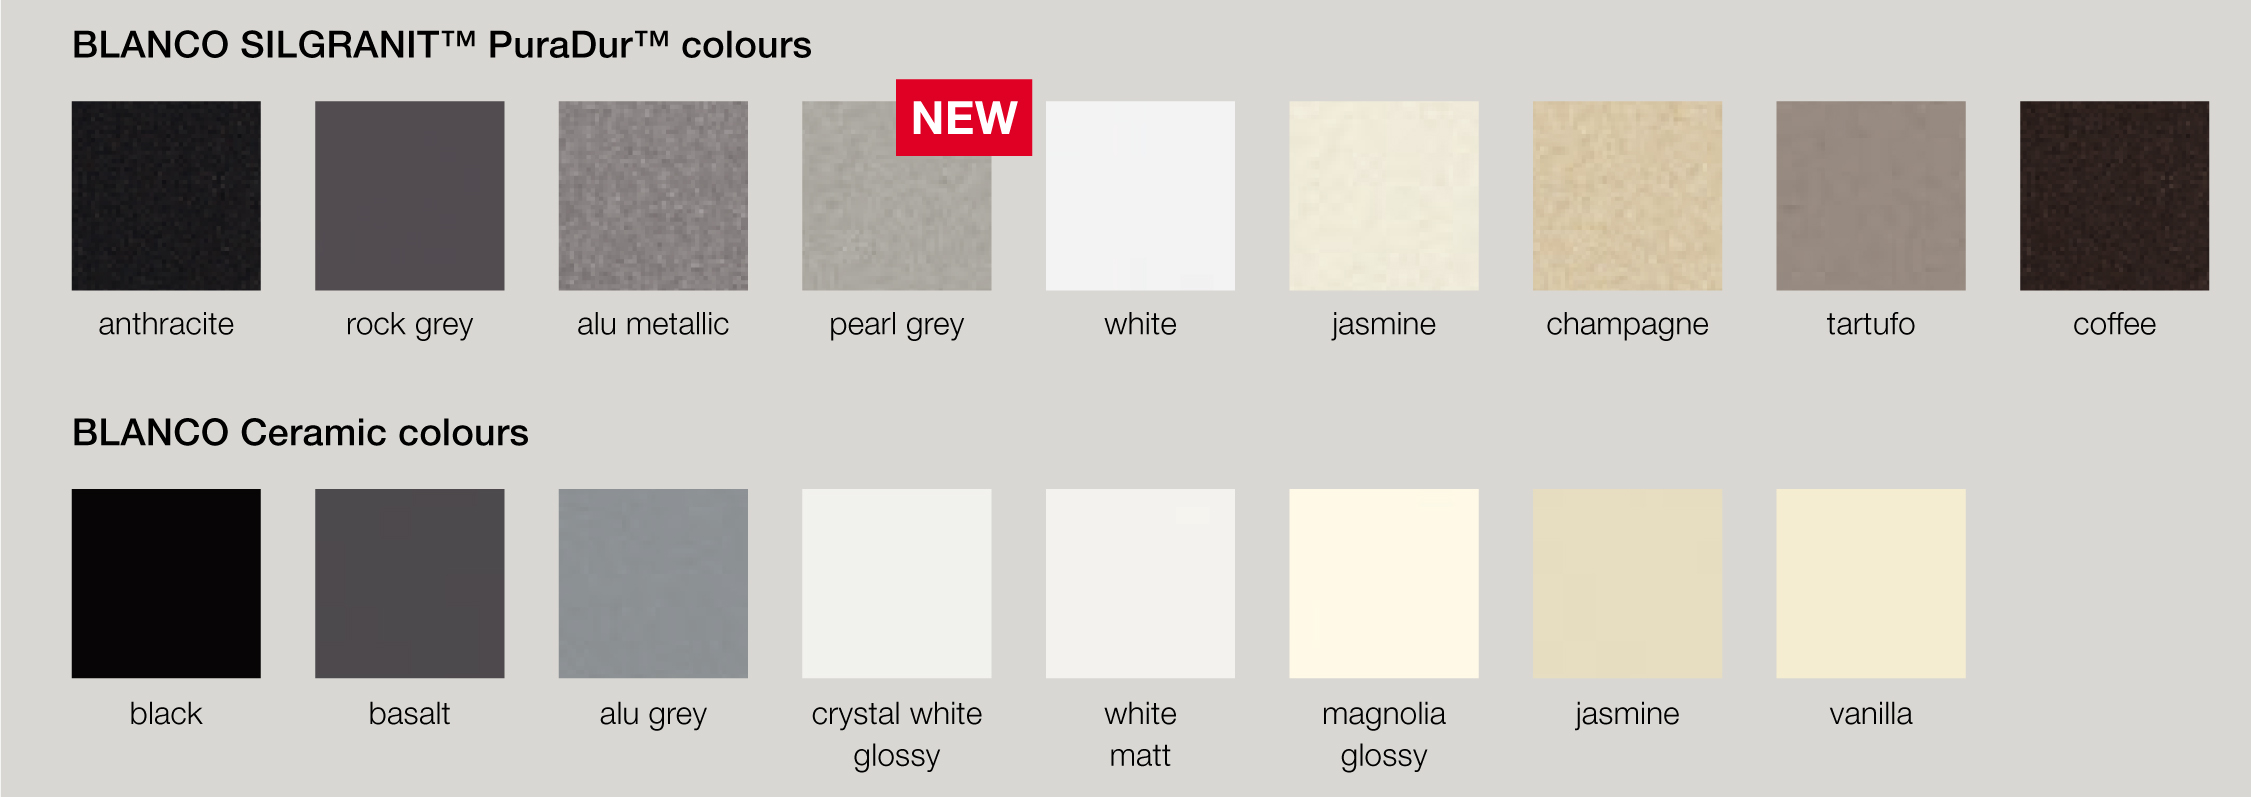 Blanco Silgranit Colours : BLANCO?s online color assistant will help you create tasteful ...